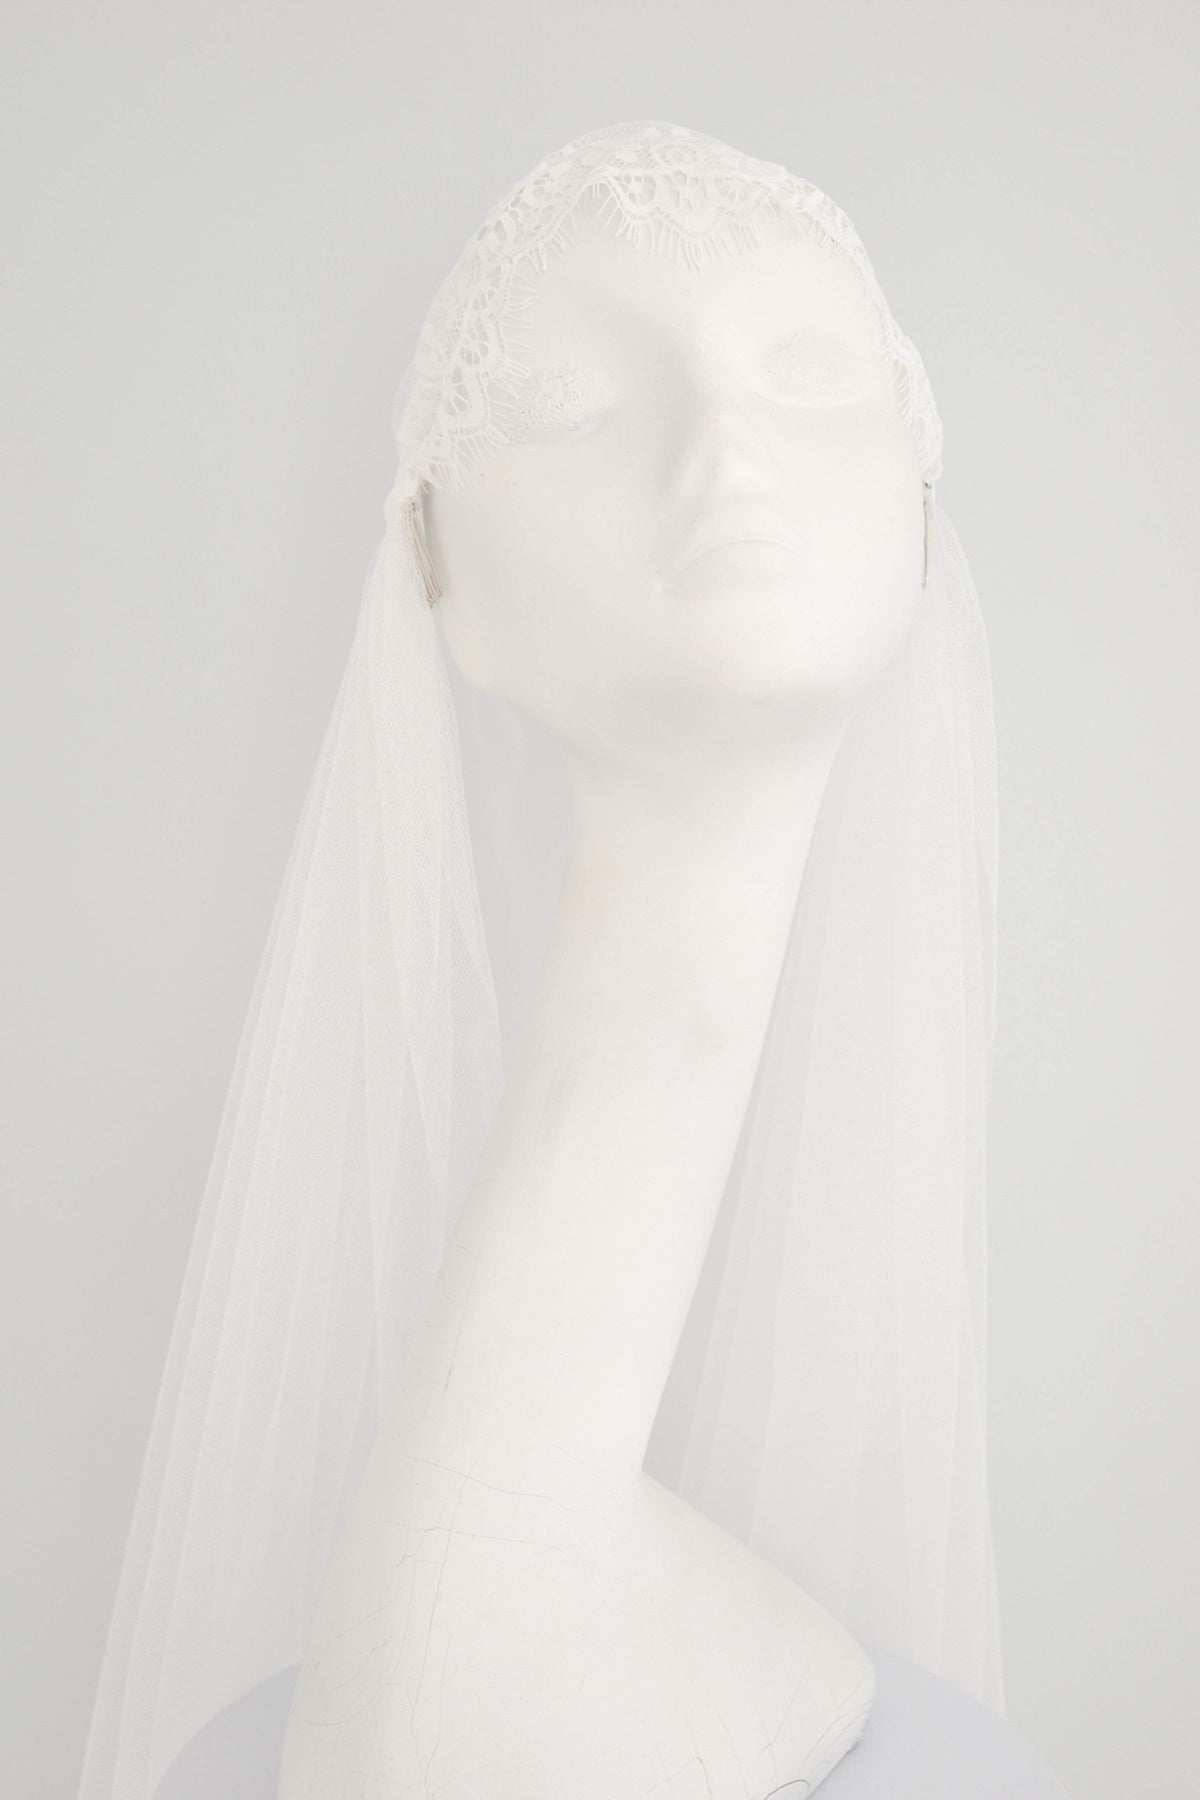 Wedding Veil Silk style lace Juliet cap wedding veil - 'Amelie'